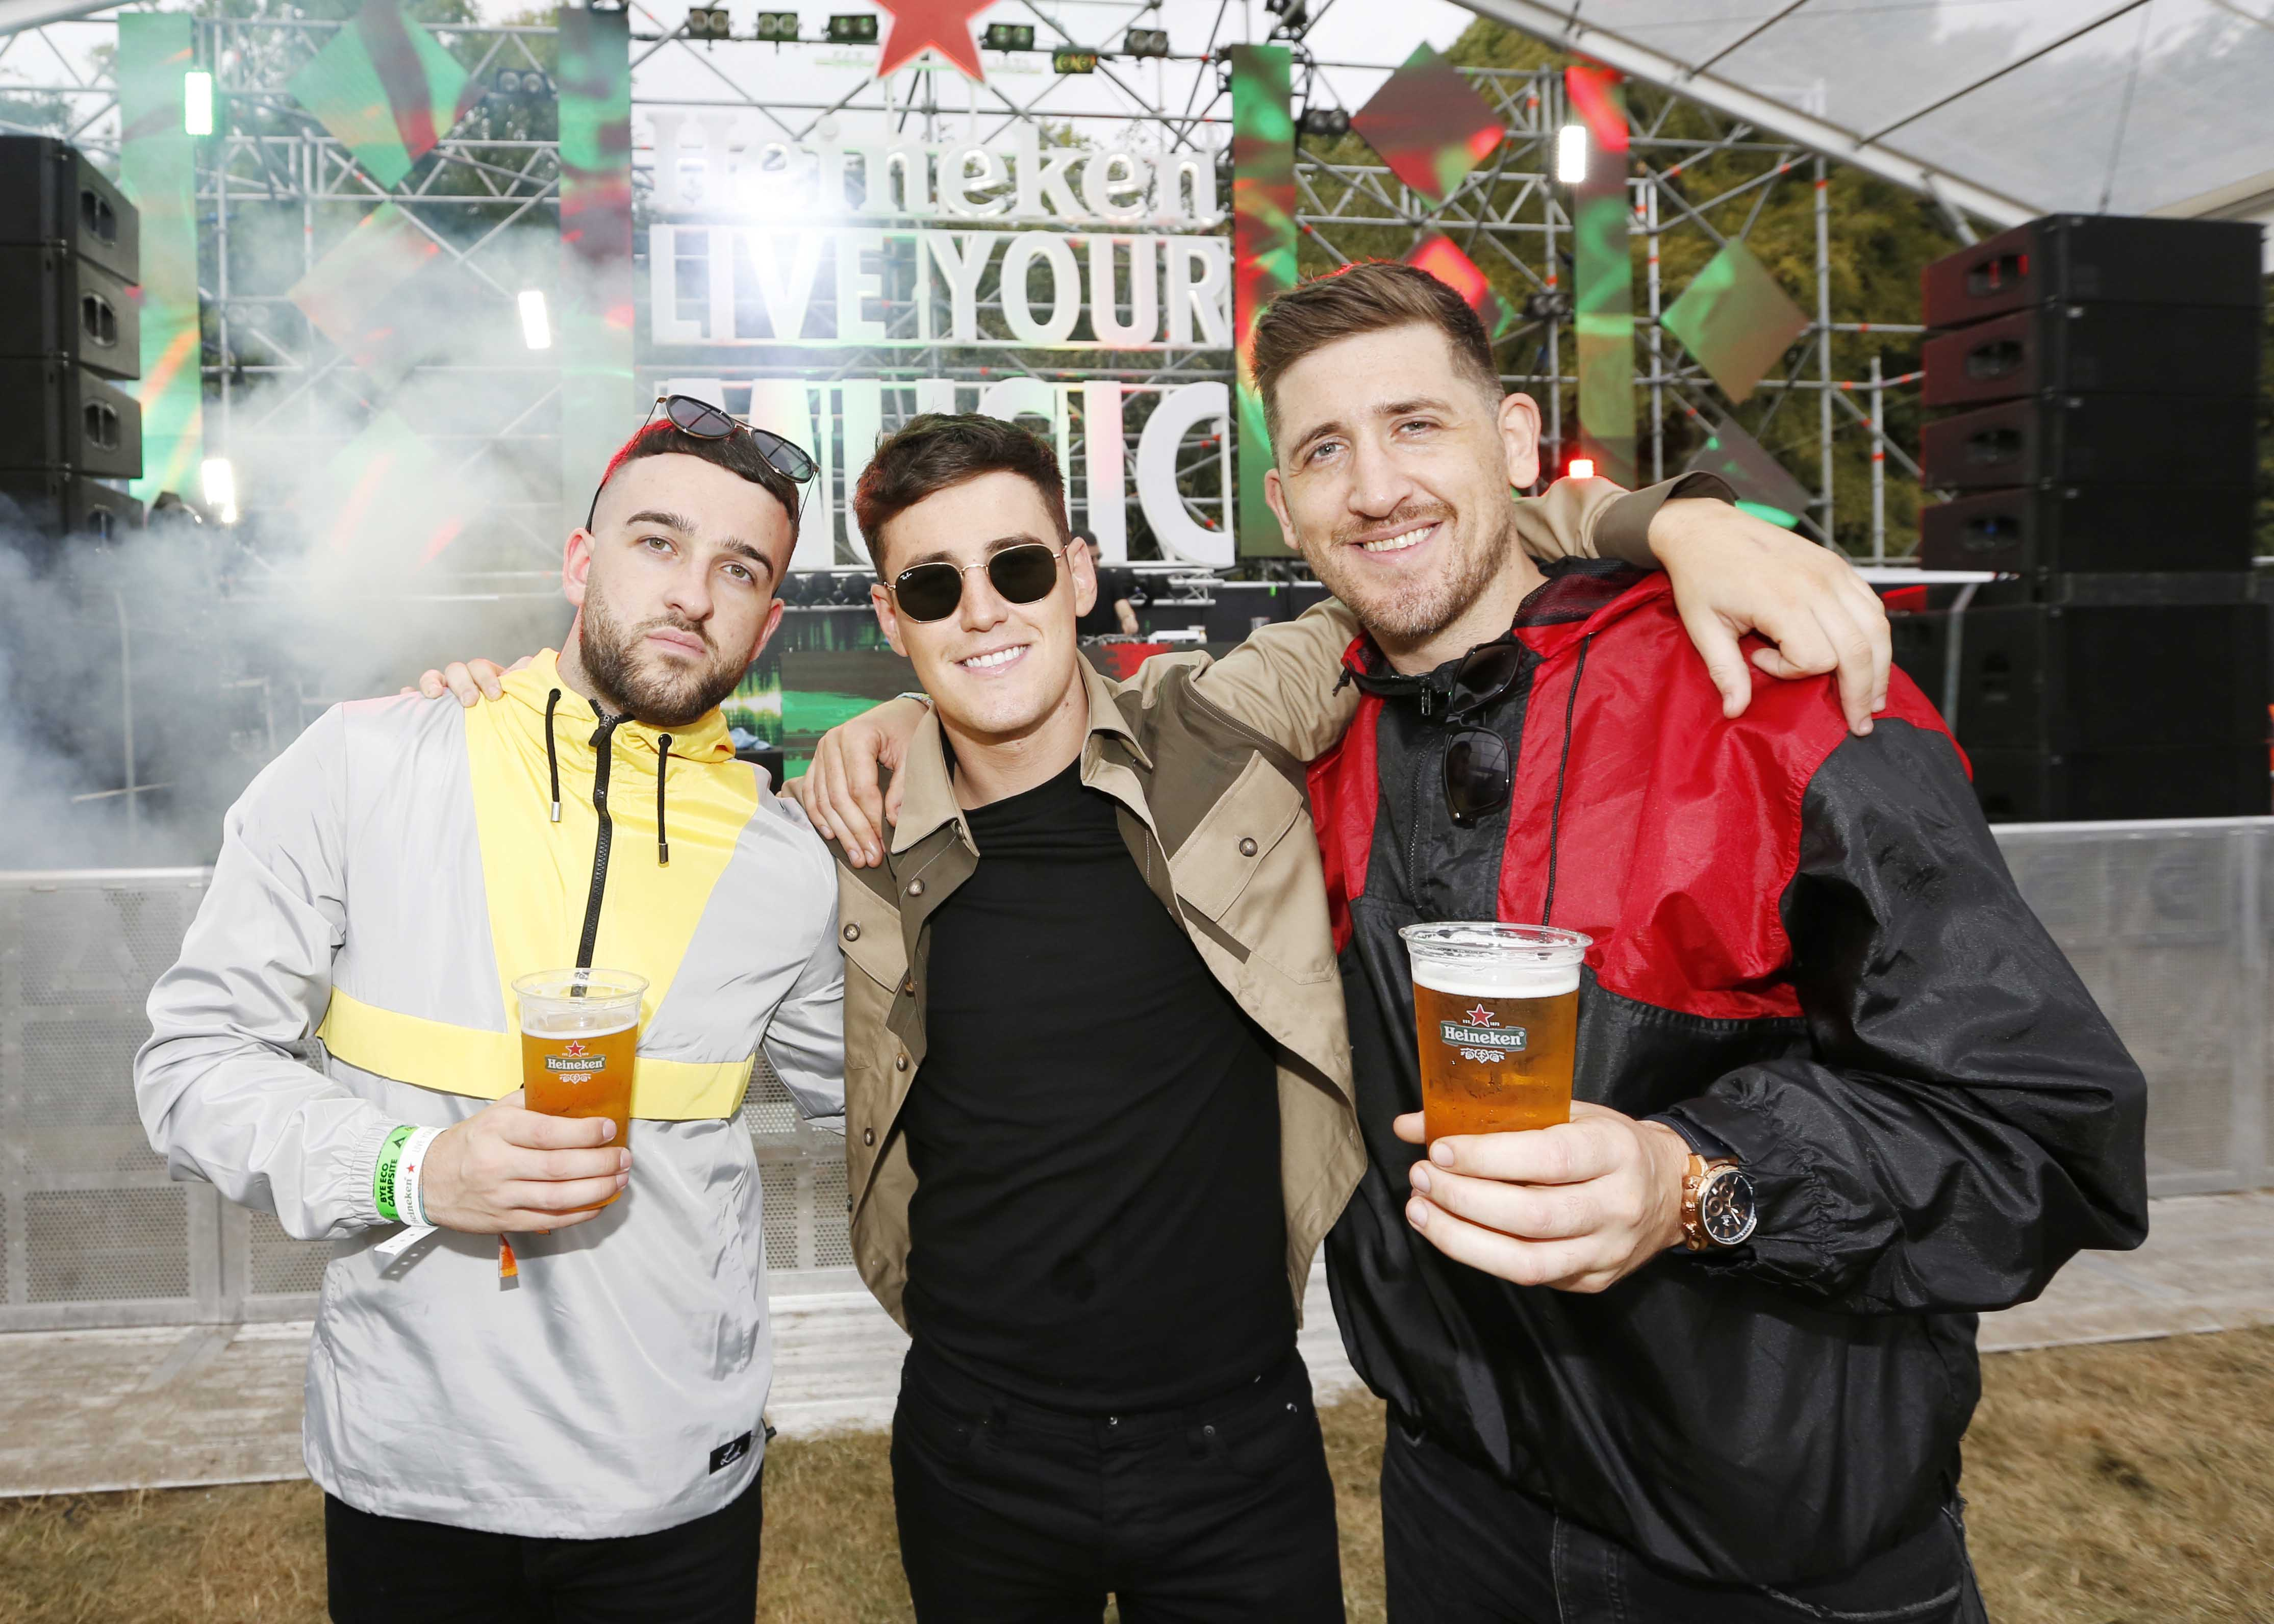 NO REPRO FEE 30/08/2019 Heineken Live Your Music Stage at Electric Picnic 2019. Pictured are (LtoR) Adam Power, Nathan Adams & Tomas Murphy at the Heineken Live Your Music Stage at Electric Picnic 2019. This year's area is an enormous structure on two levels, with a glass roof that will keep festival-goers dry but let them dance beneath the sun and stars! The immersive and interactive lightshow has been reimagined for 2019 which, combined with the state-of-the-art soundsystem, make Live Your Music the most impressive festival stage in the country. Photo: Sasko Lazarov/Phorocall Ireland